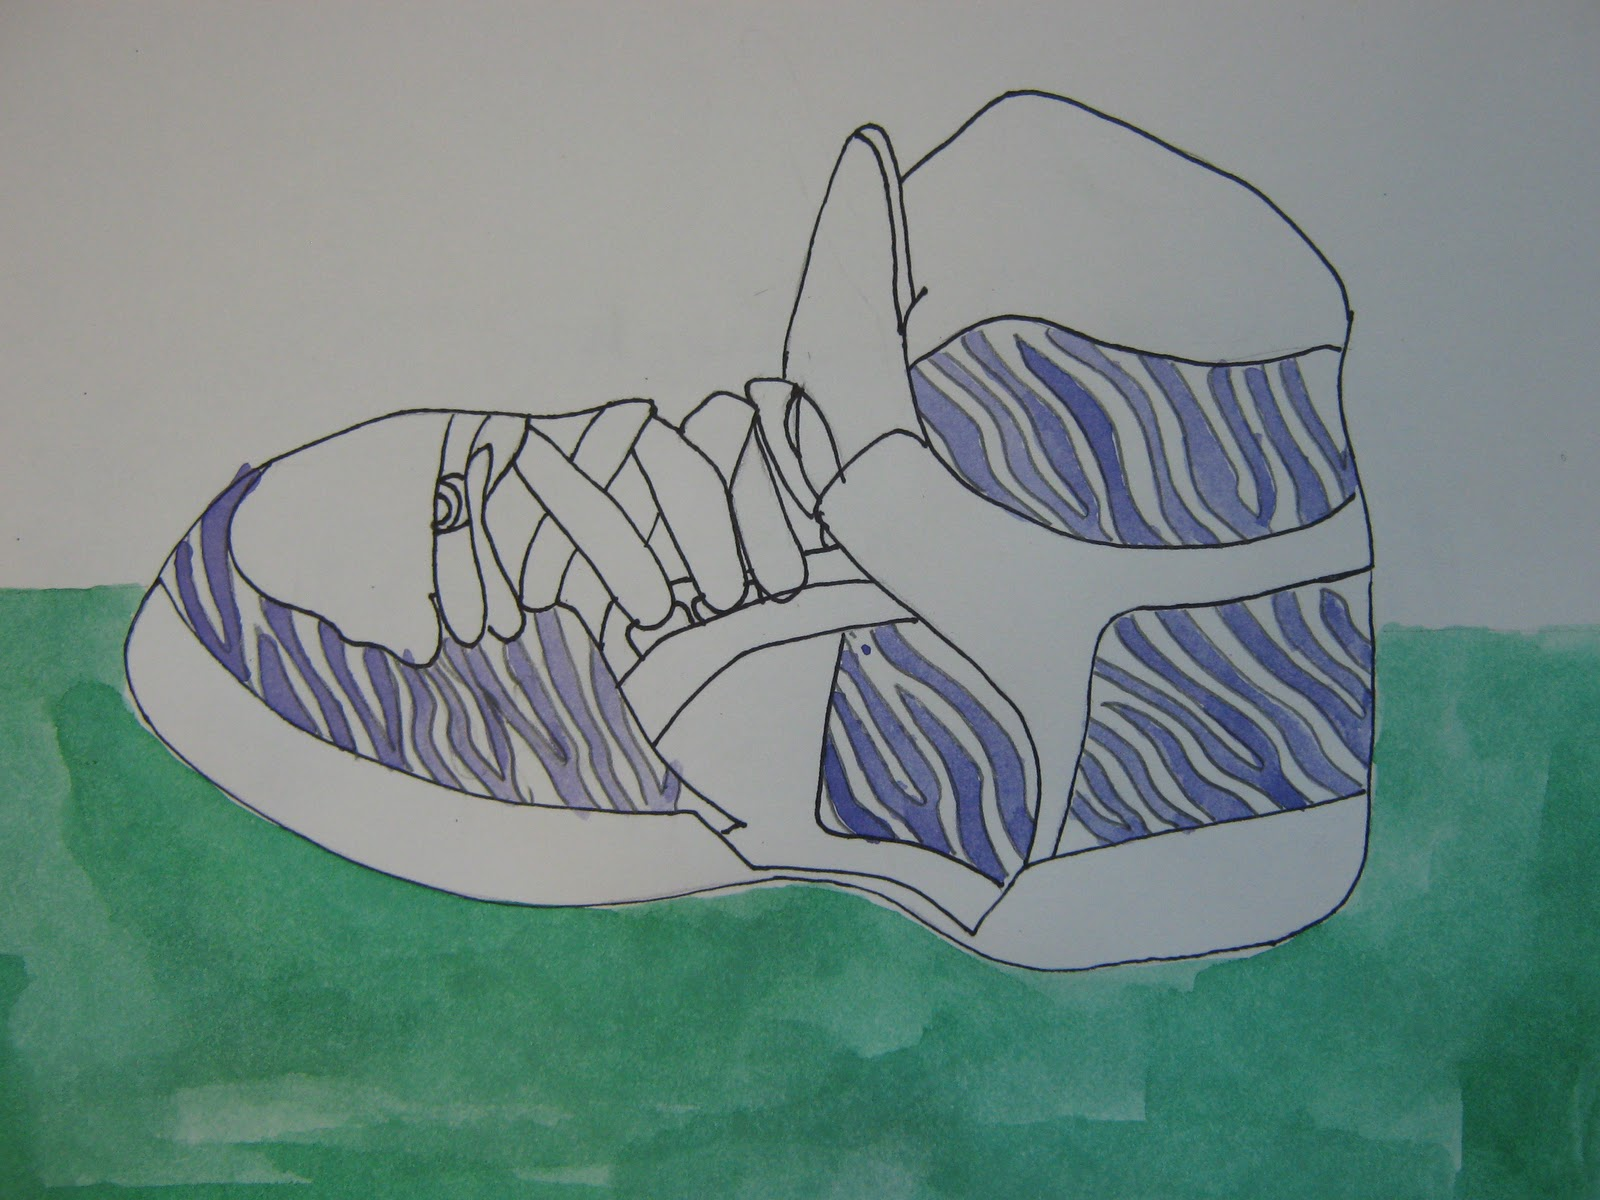 Contour Line Drawing Shoes Lesson Plan : Art in the middle school: december 2011